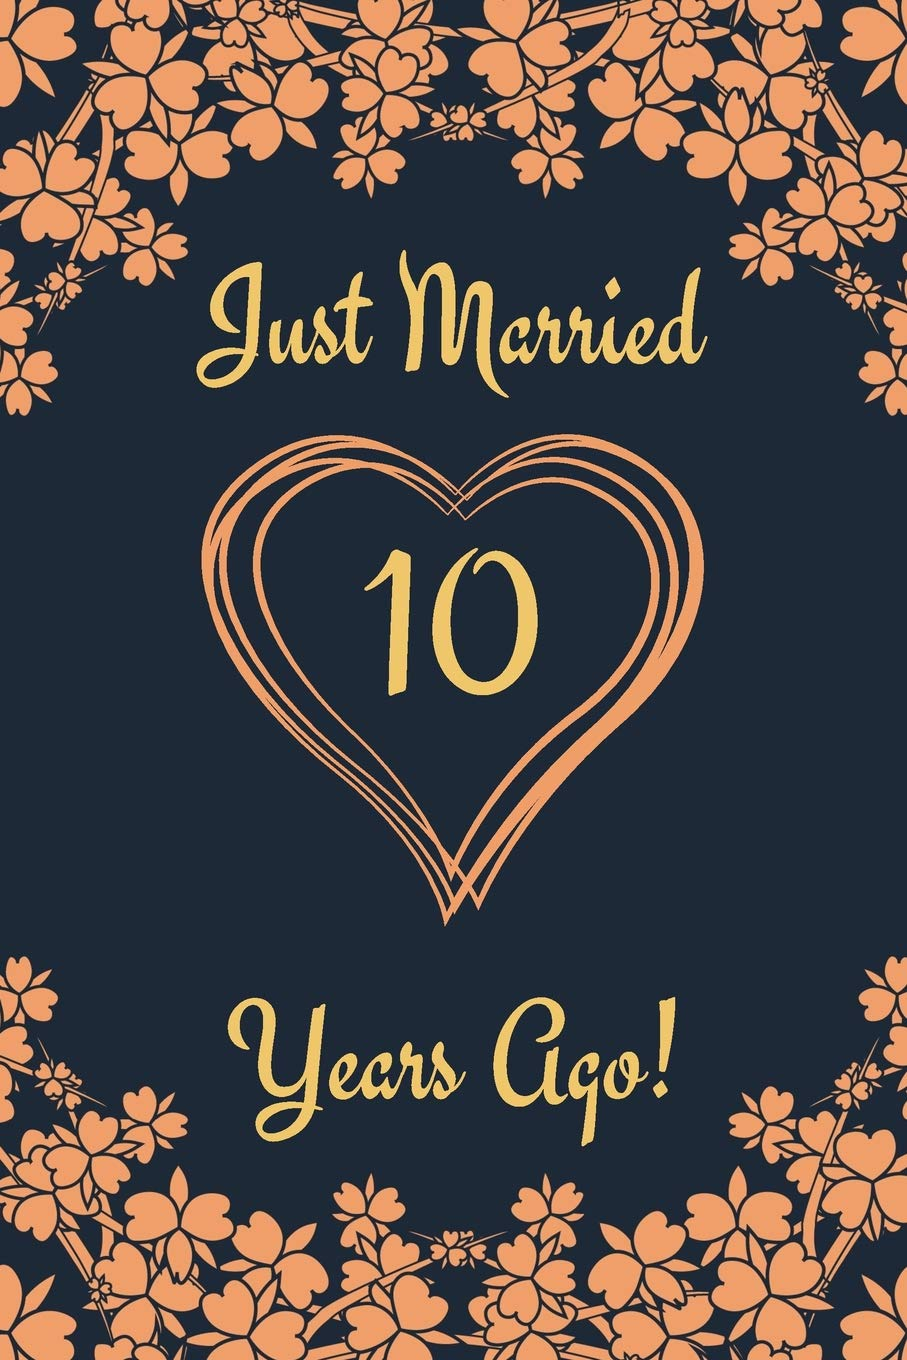 10th Anniversary Journal Lined Journal Notebook 10th Anniversary Gifts For Her And Him Funny 10 Year Wedding Anniversary Celebration Gift Just Married 10 Years Ago Ruslove Shanley 9781072240334 Amazon Com Books